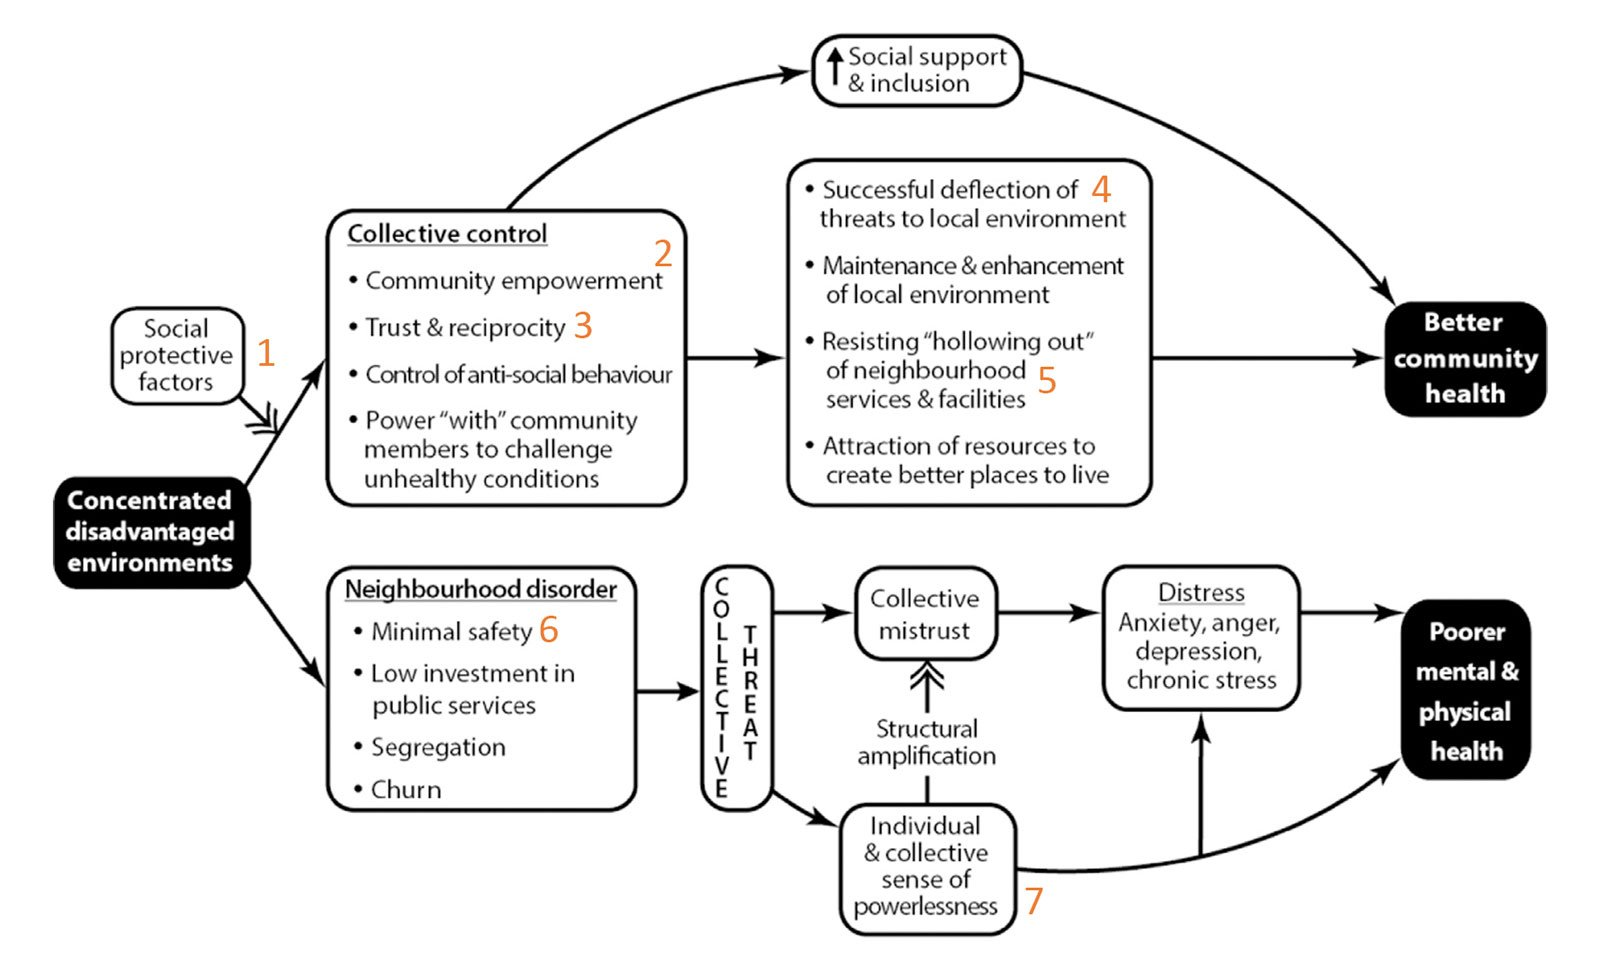 Figure-B-Synthesis-of-the-theoretical-pathways-from-low-control-to-inequalities-in-health-at-the-community-level-(Whitehead,-2016)_02